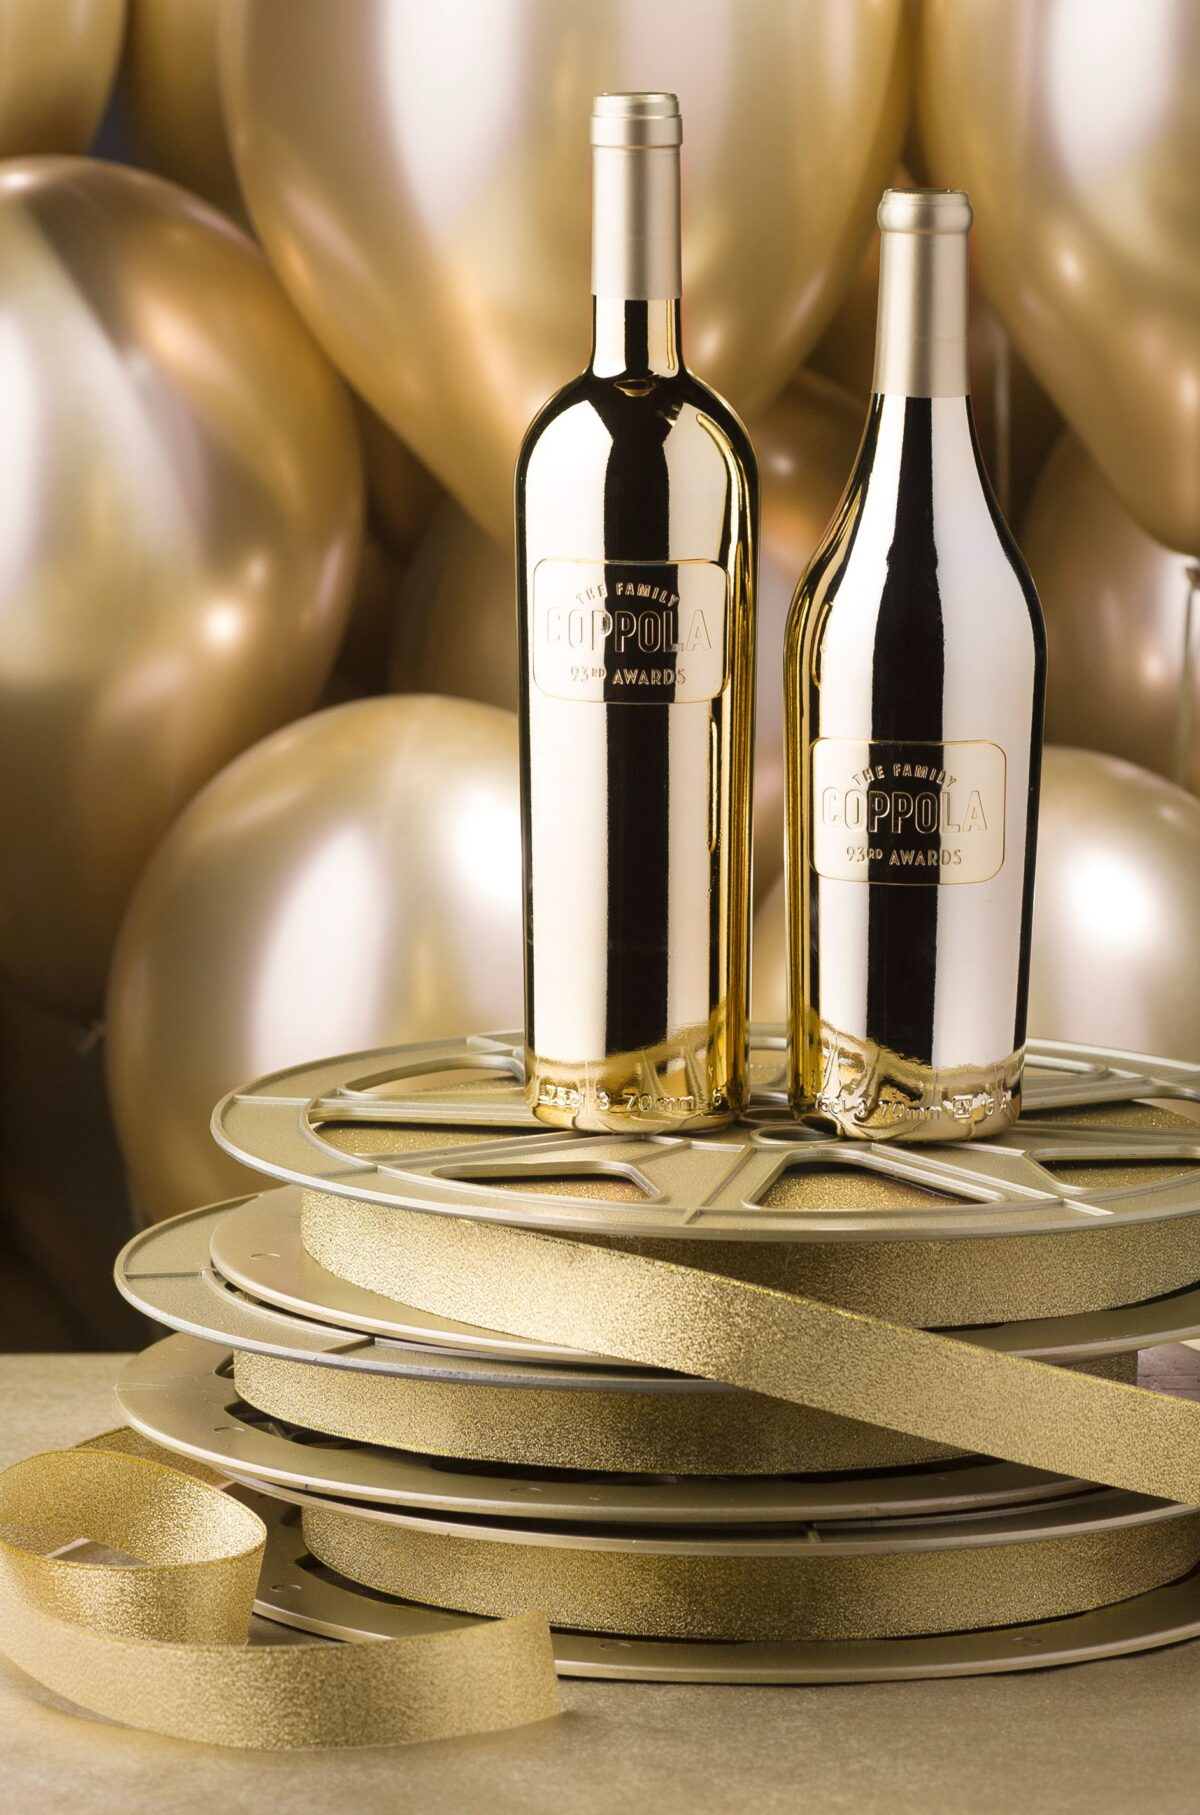 Francis Ford Coppola Winery celebrates the 93rd AcademyAwards with two limited edition wines produced by Bottega S.p.A.